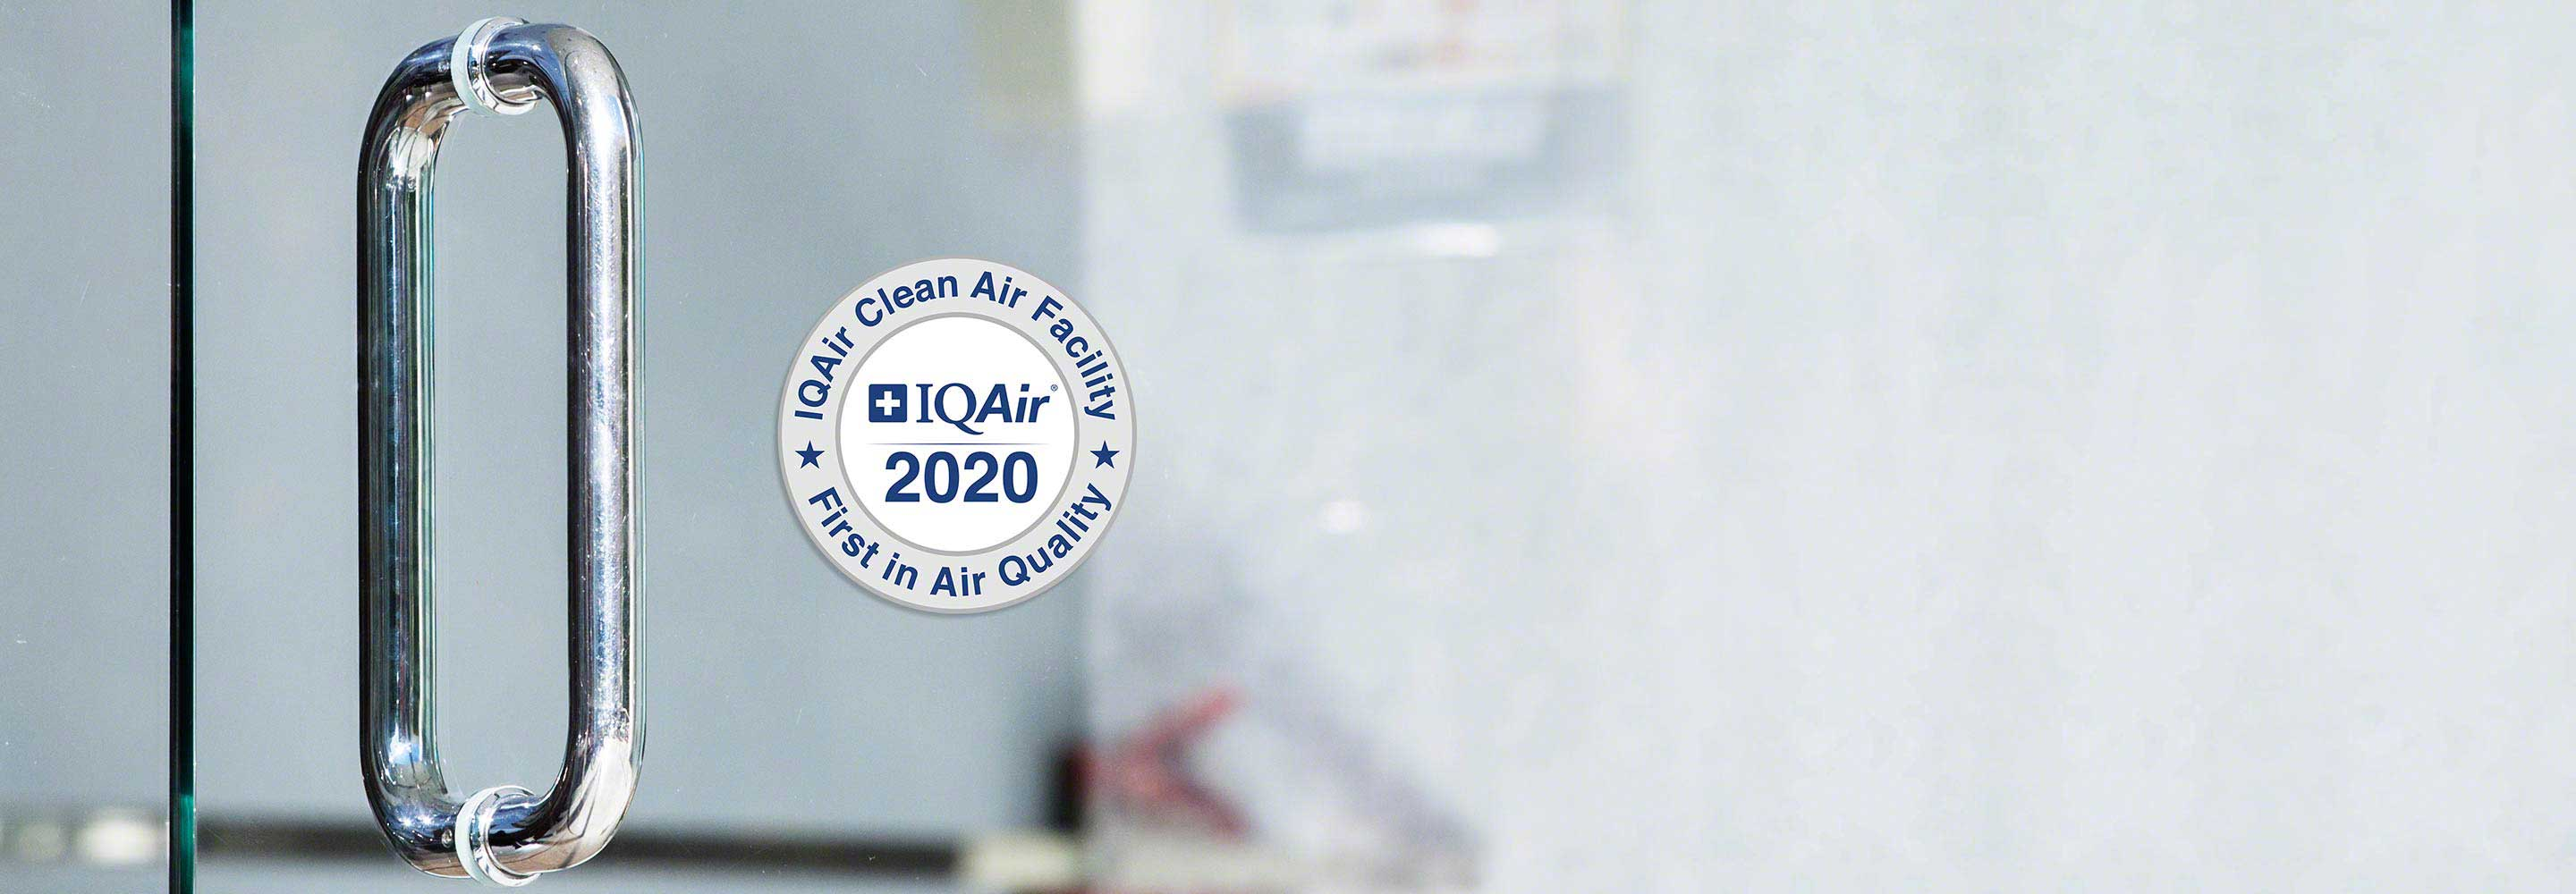 IQAir's Clean Air Facility Badge on glass door